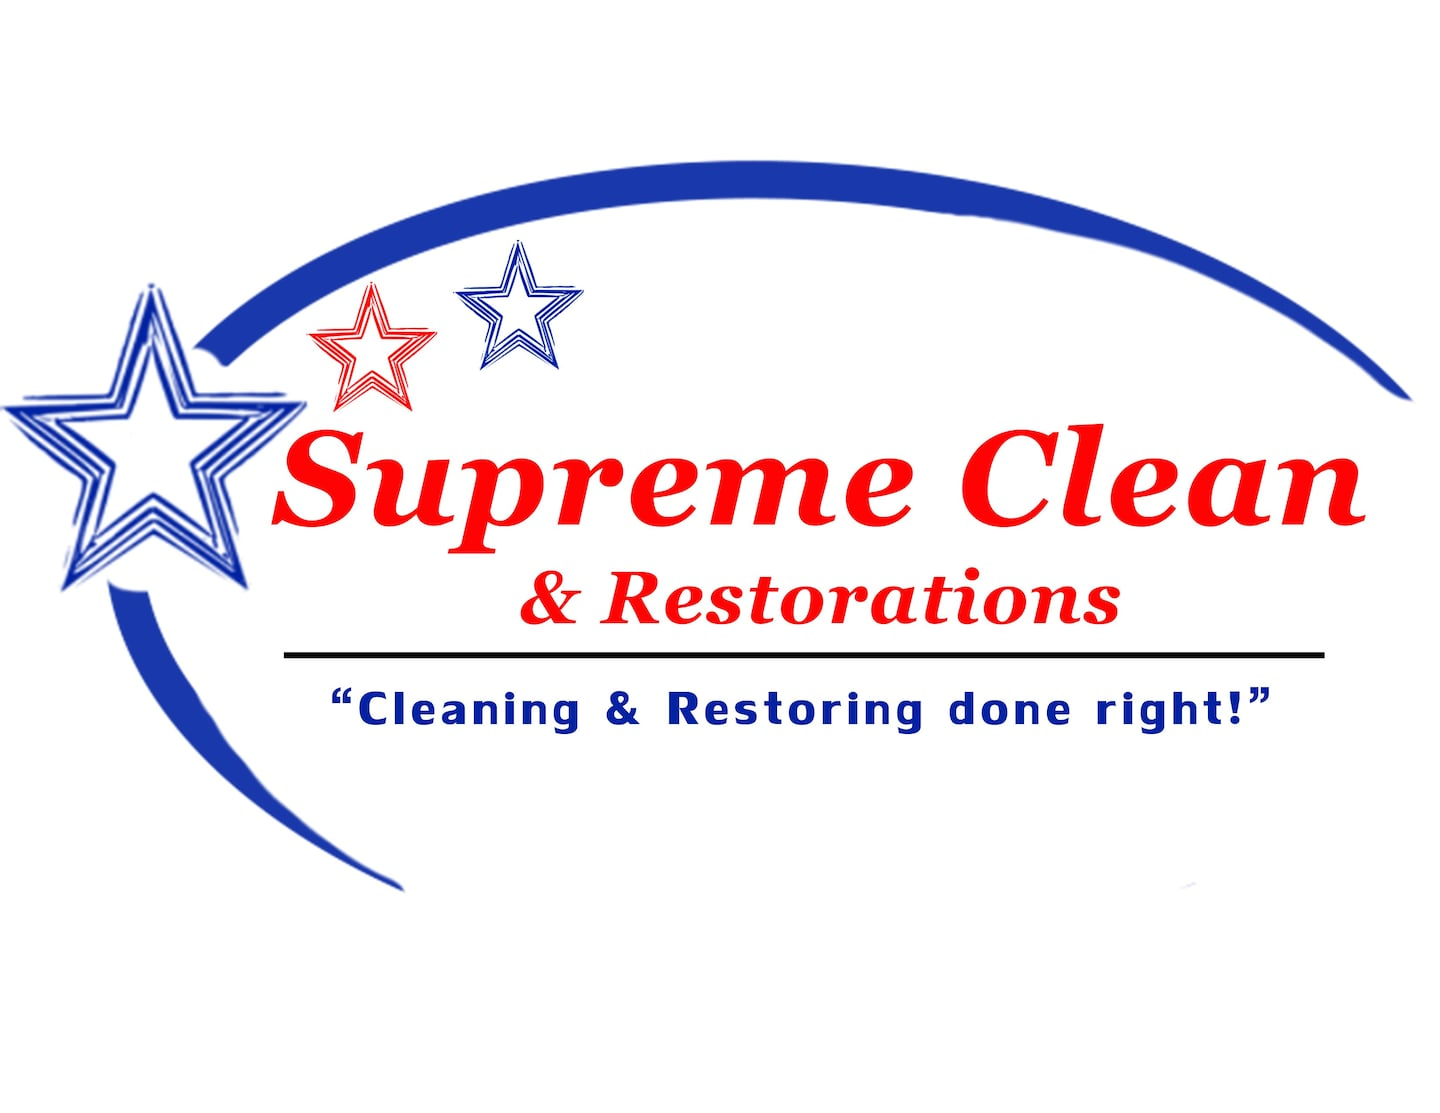 Supreme Clean & Restorations